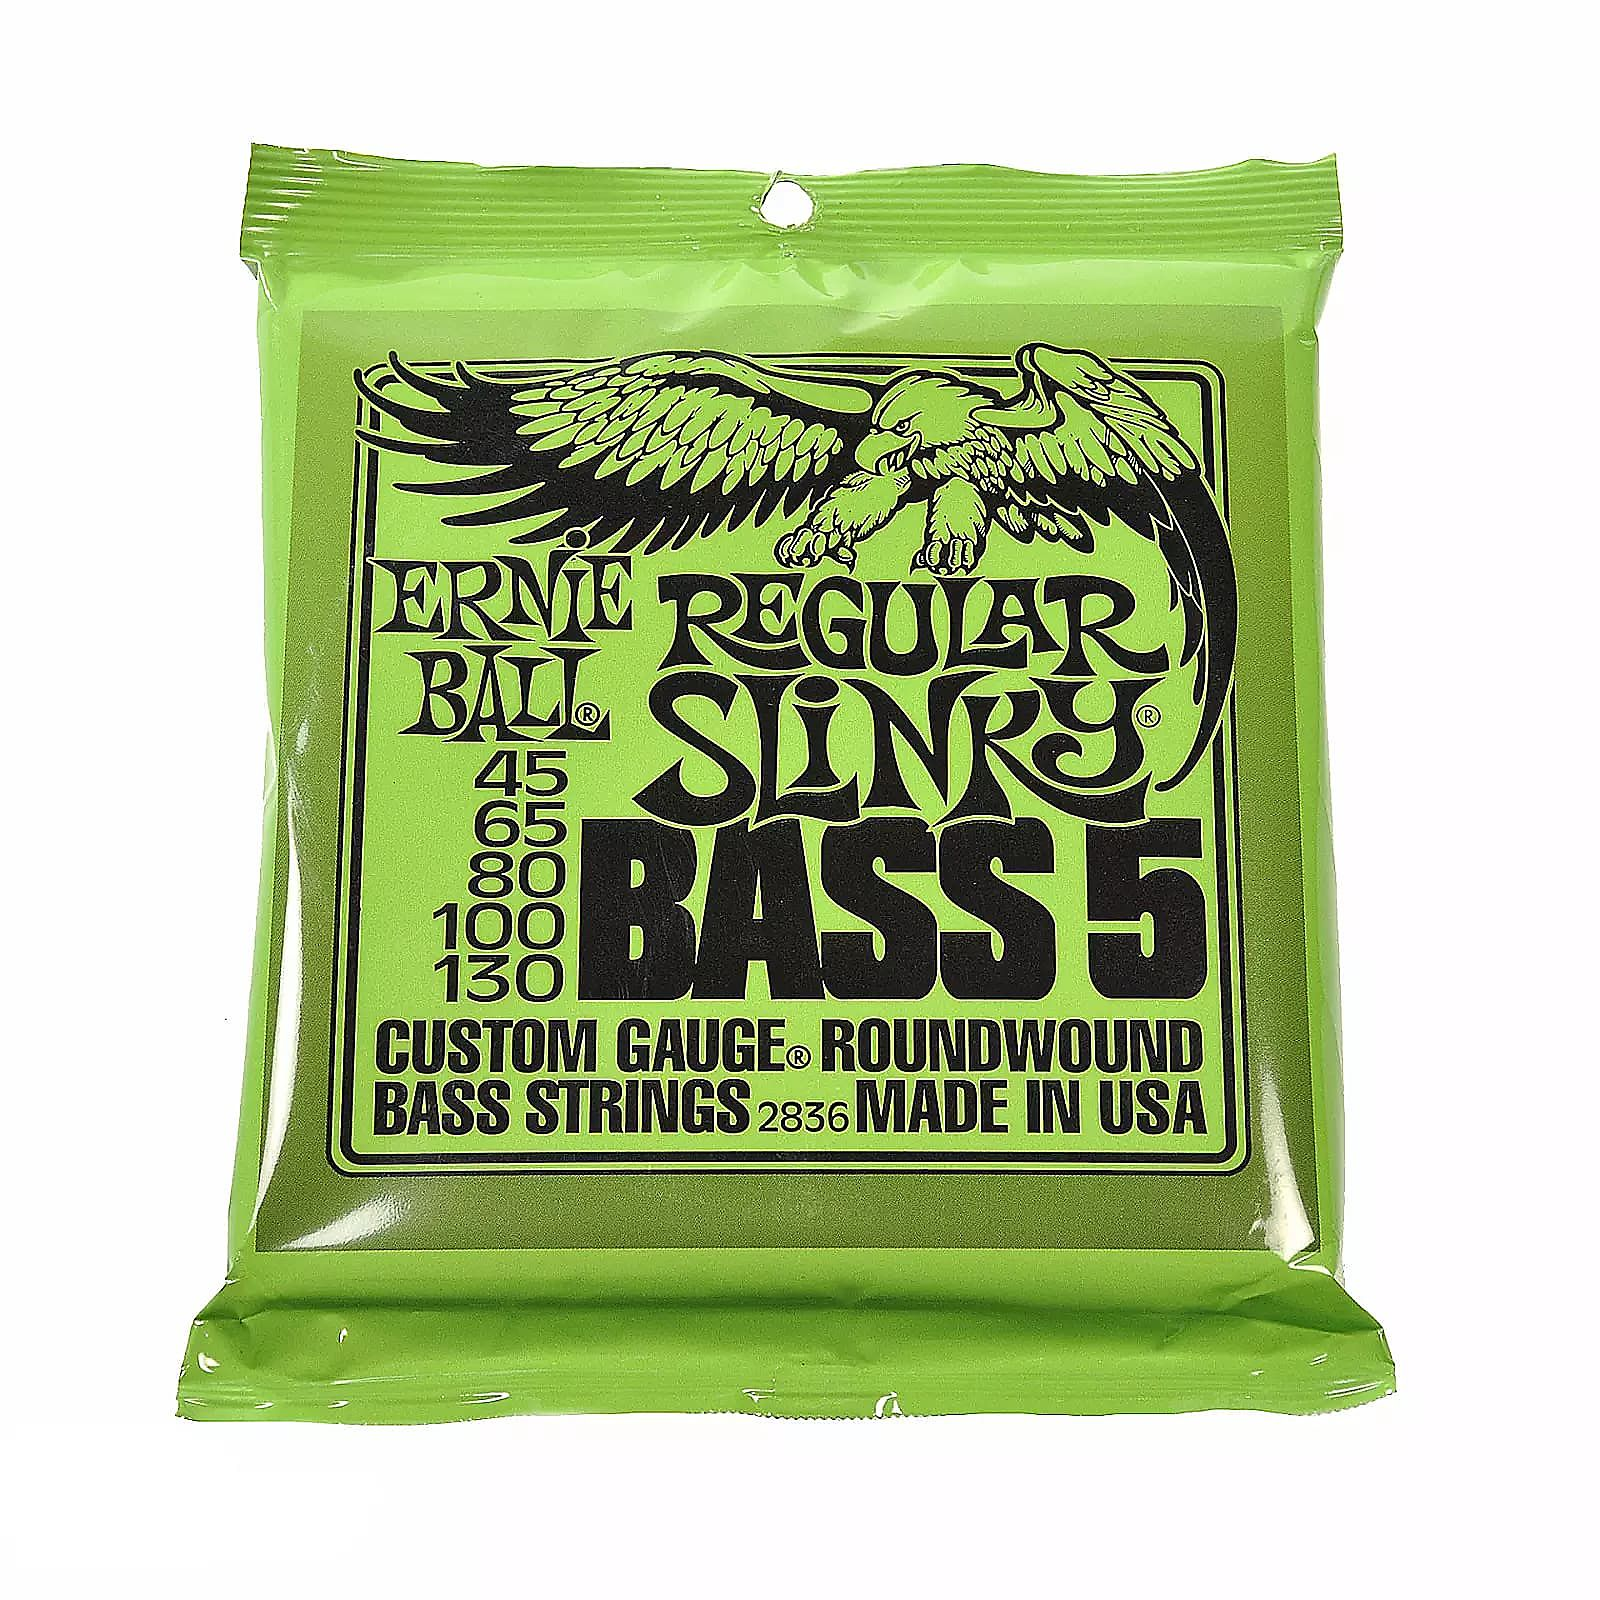 Ernie Ball 2836 Regular Slinky 5-STRING BASS Nickel Wound Strings Gauge 45-130